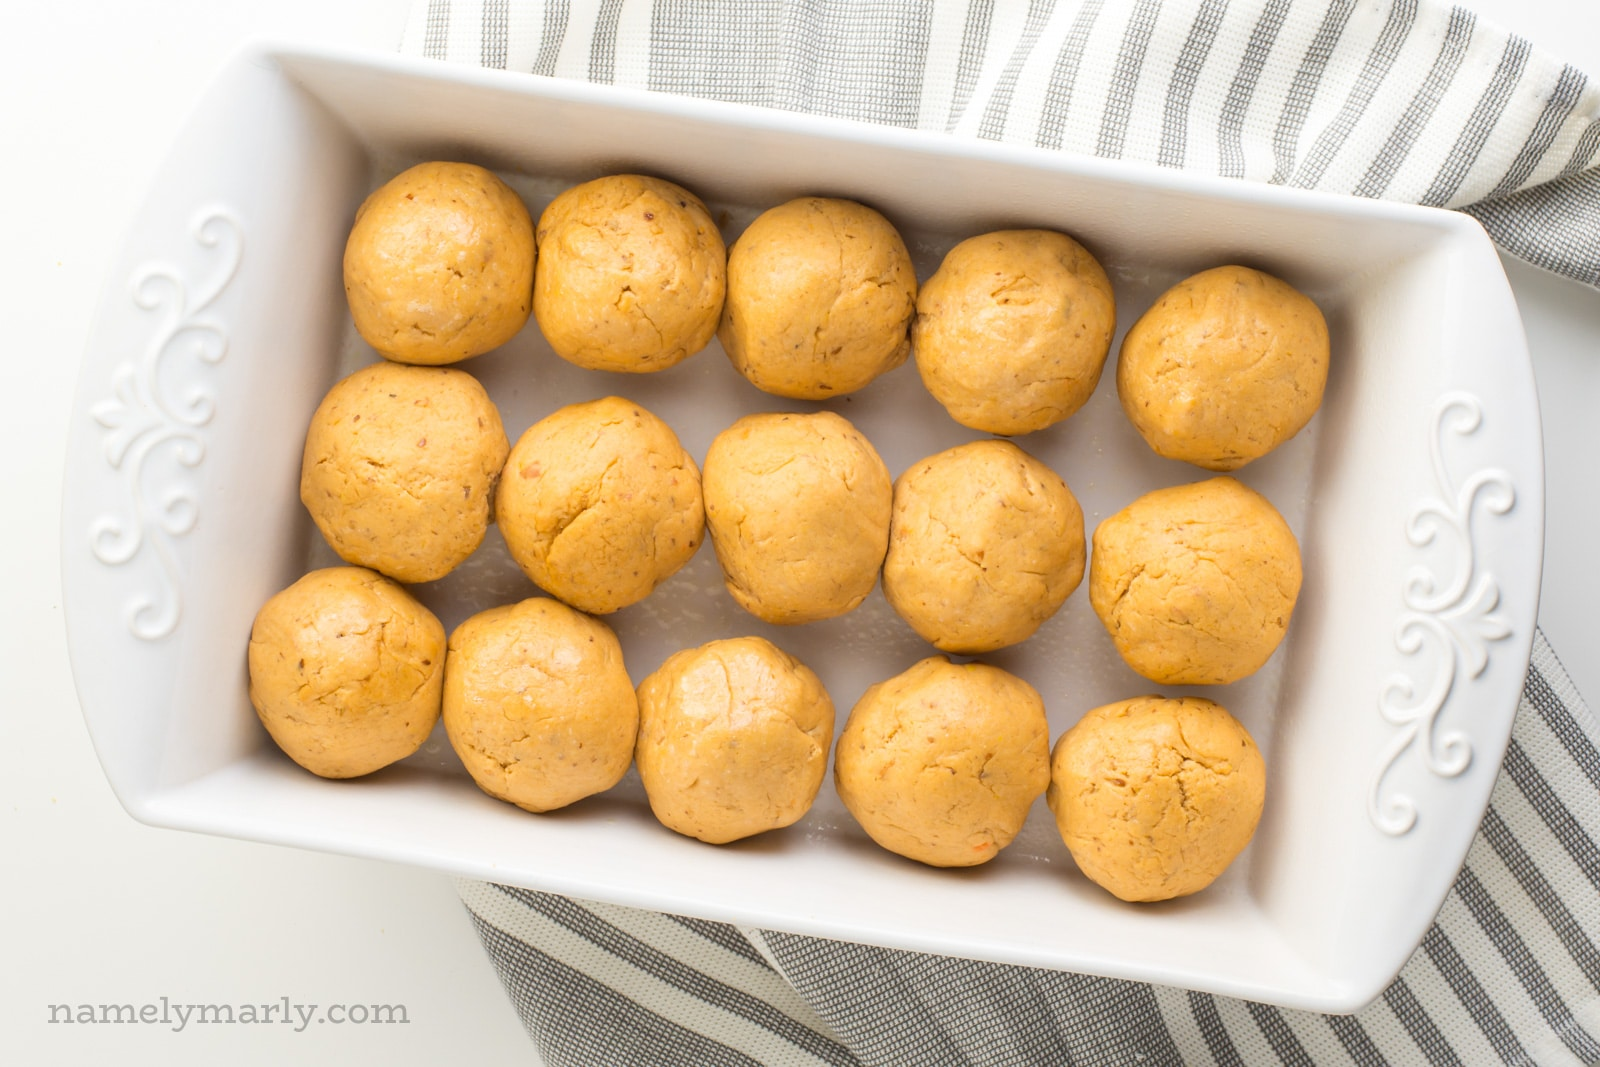 A baking dish full of sweet potato dinner rolls waiting to rise before going in the oven.